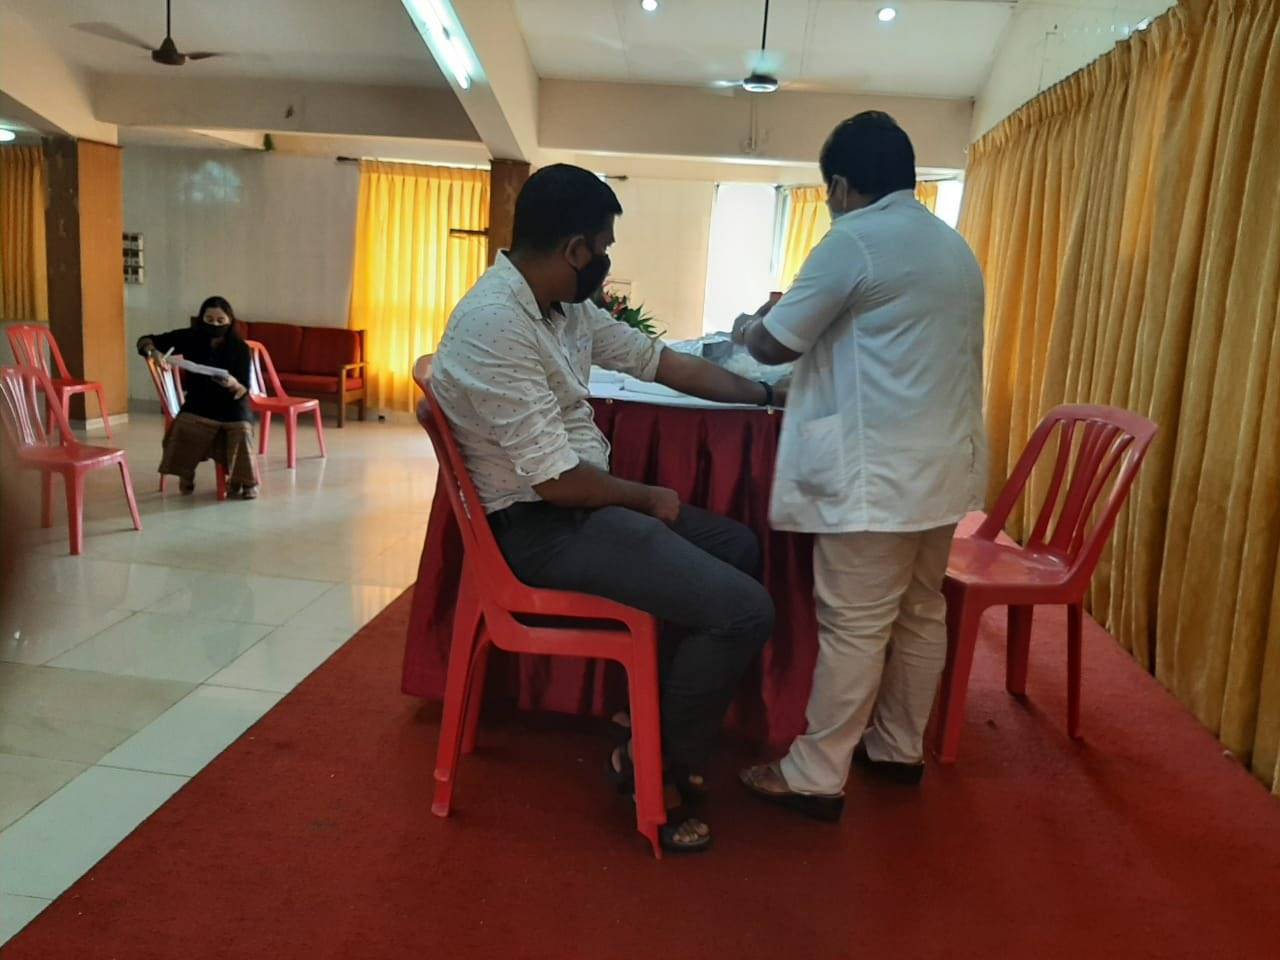 The offices of the Collector North Goa, Deputy Collector Panaji and Mamlatdar Tiswadi organised a screening camp for willing plasma donors on 16th October at Miramar Residency